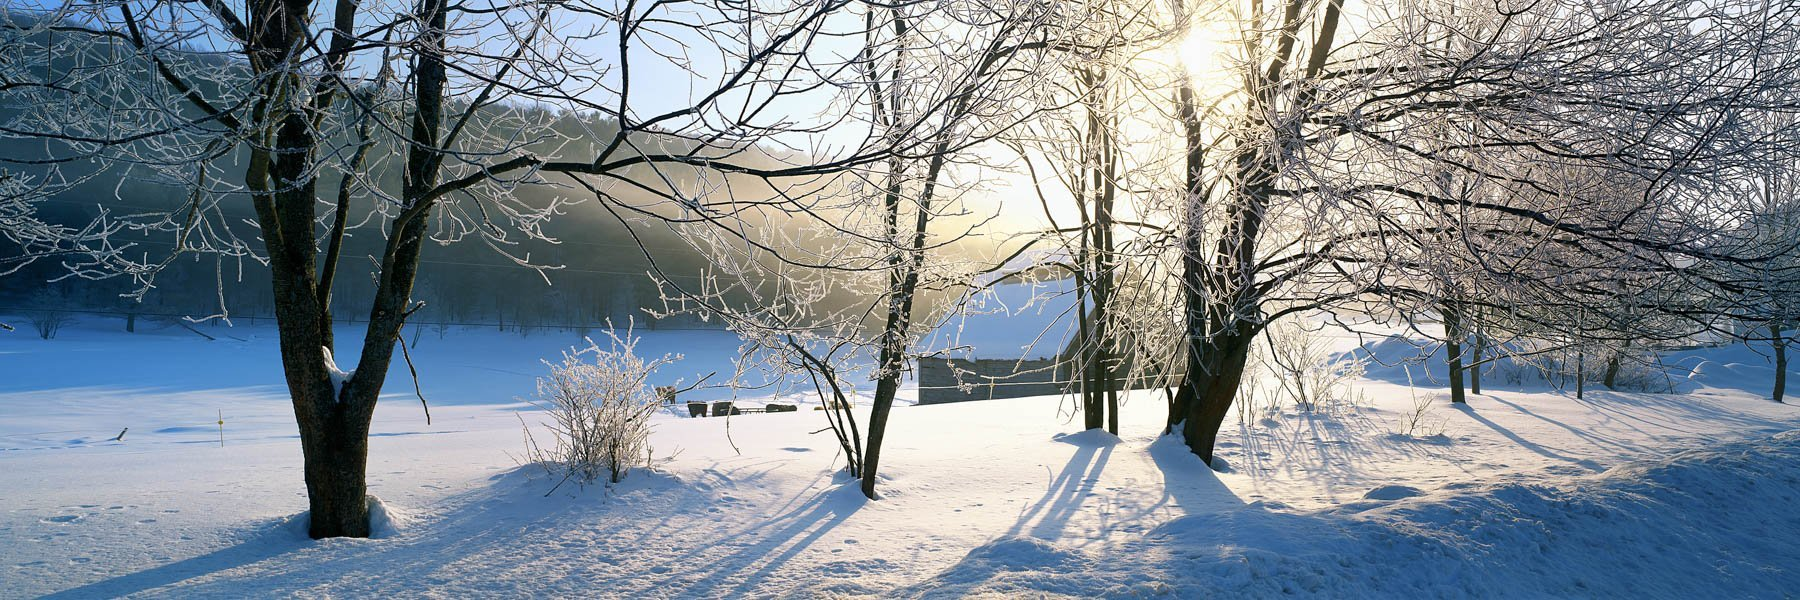 The serenity of a winter landscape, Vermont, USA.